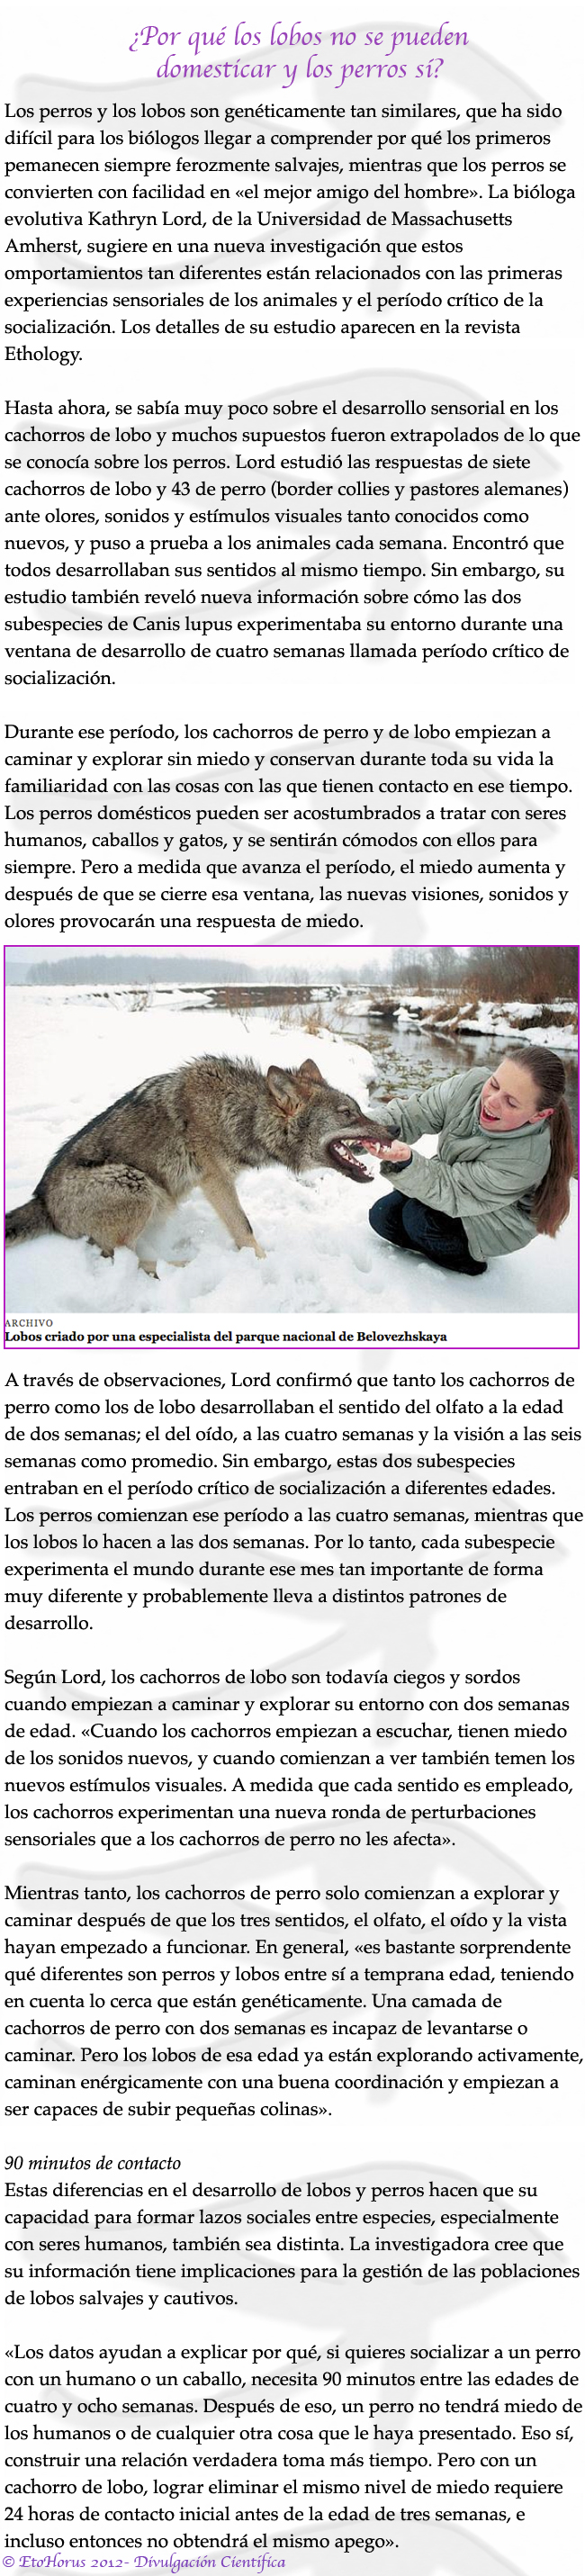 13-lobos no domesticar